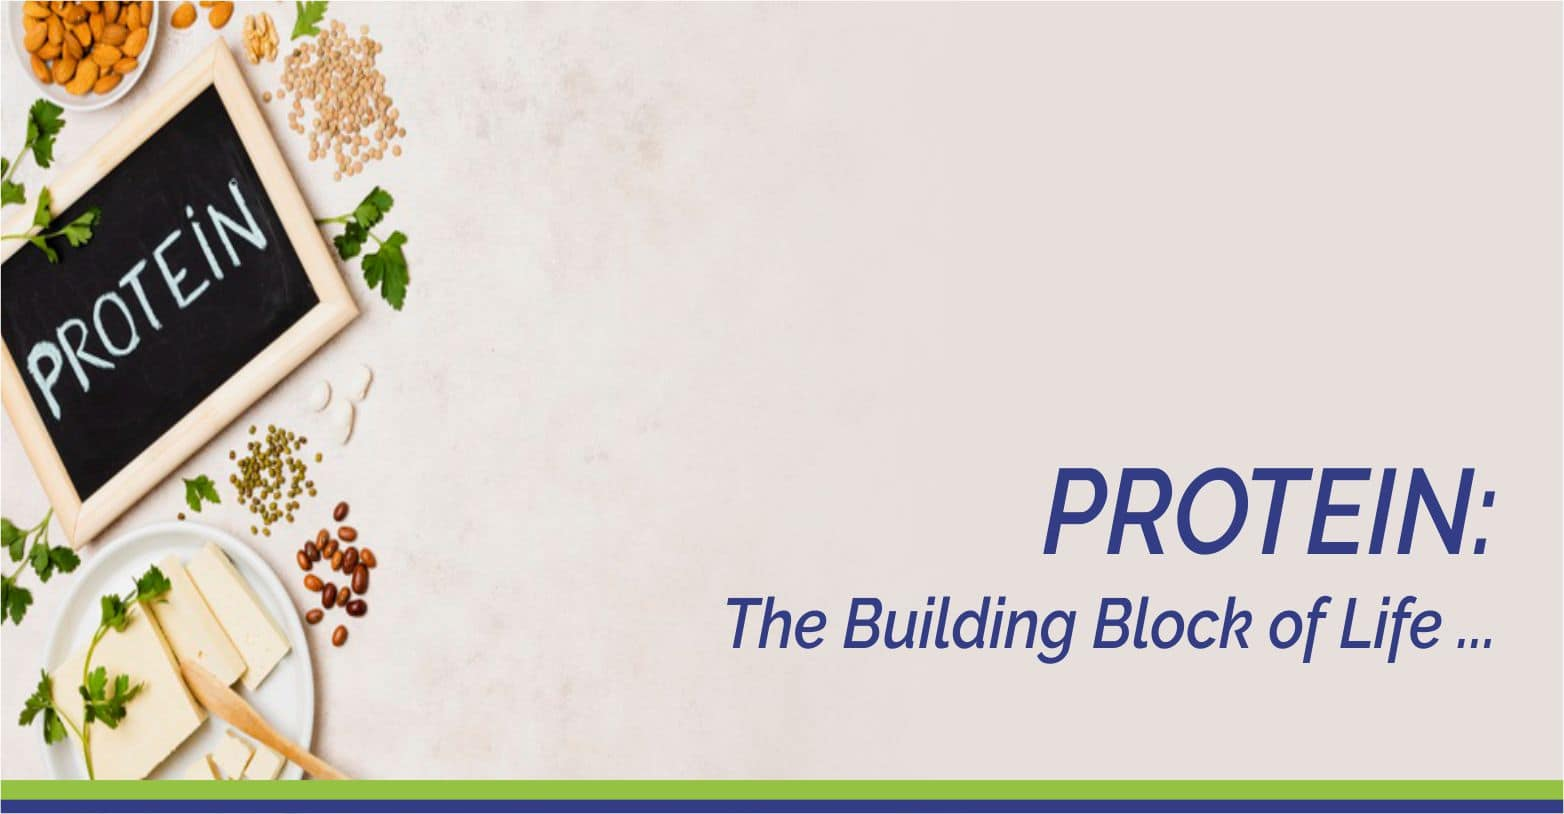 Protein: The Building Block of Life